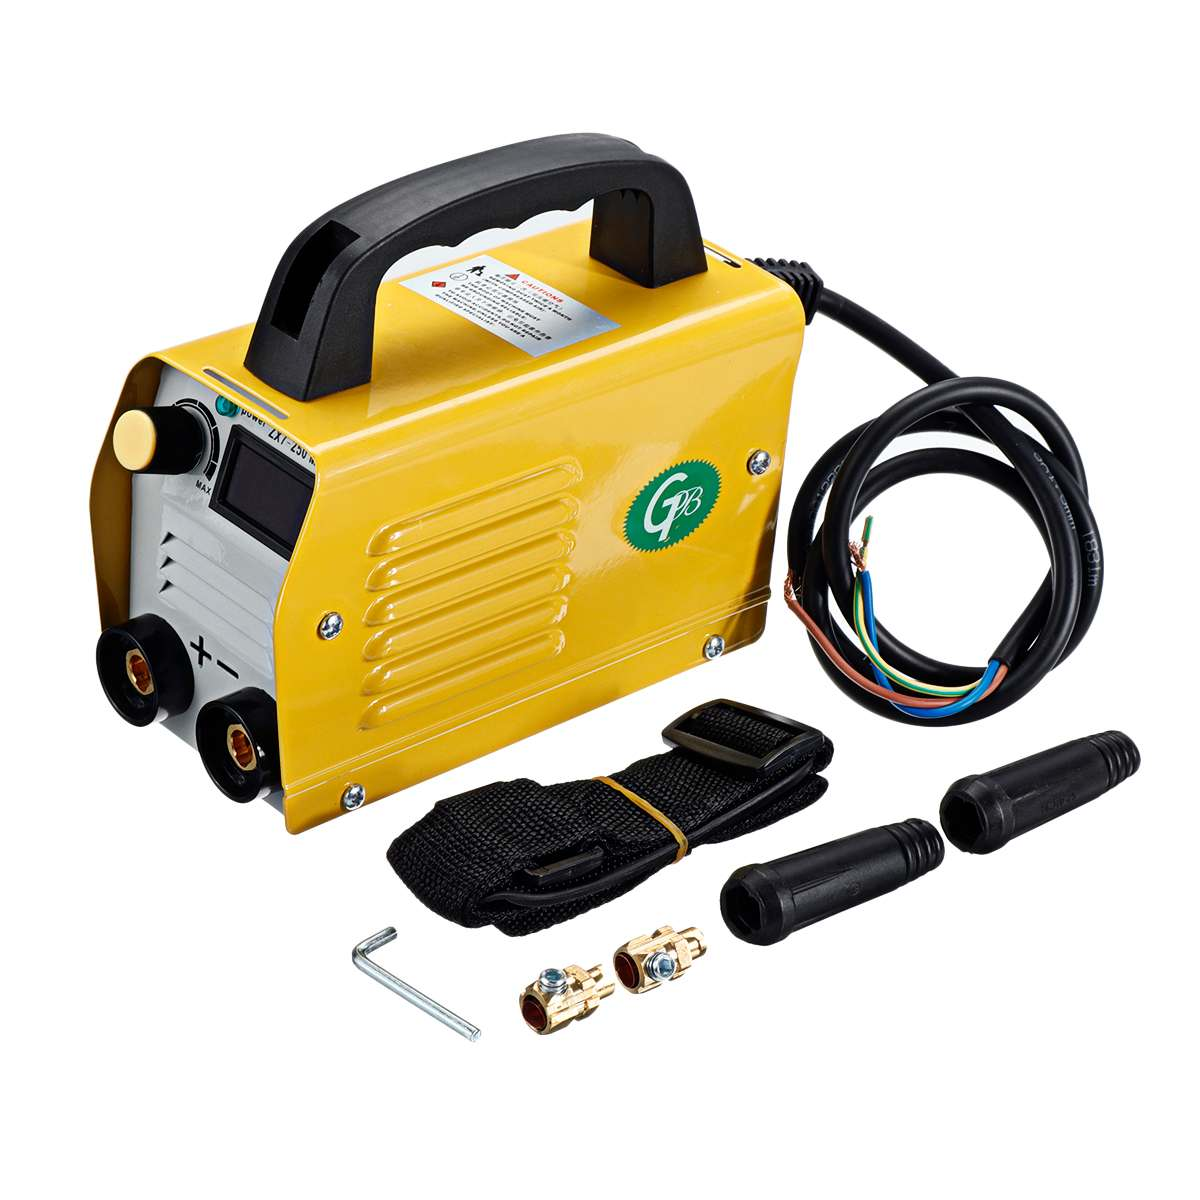 ZX7-250 ARC IGBT Inverter Electric Welding Machine LCD Display Welders Welding 20-250A  for Electric Working Power Tools